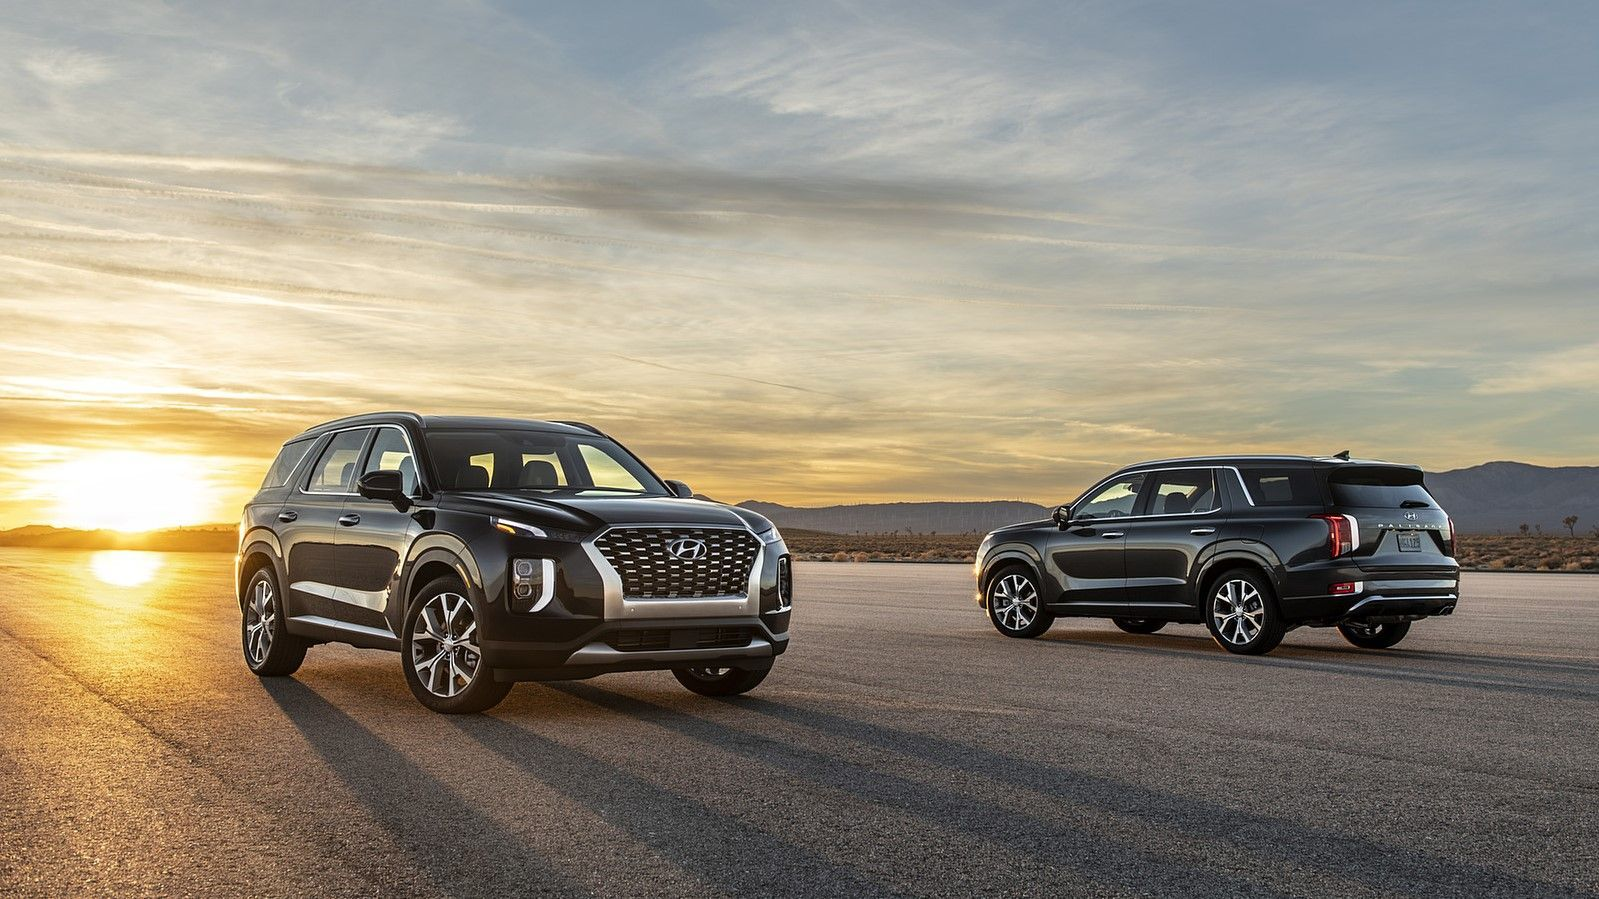 2021 Hyundai Palisade Review Release Date Prices Trims Engine And Rivals Compared In 2020 Hyundai Hyundai Suv Suv